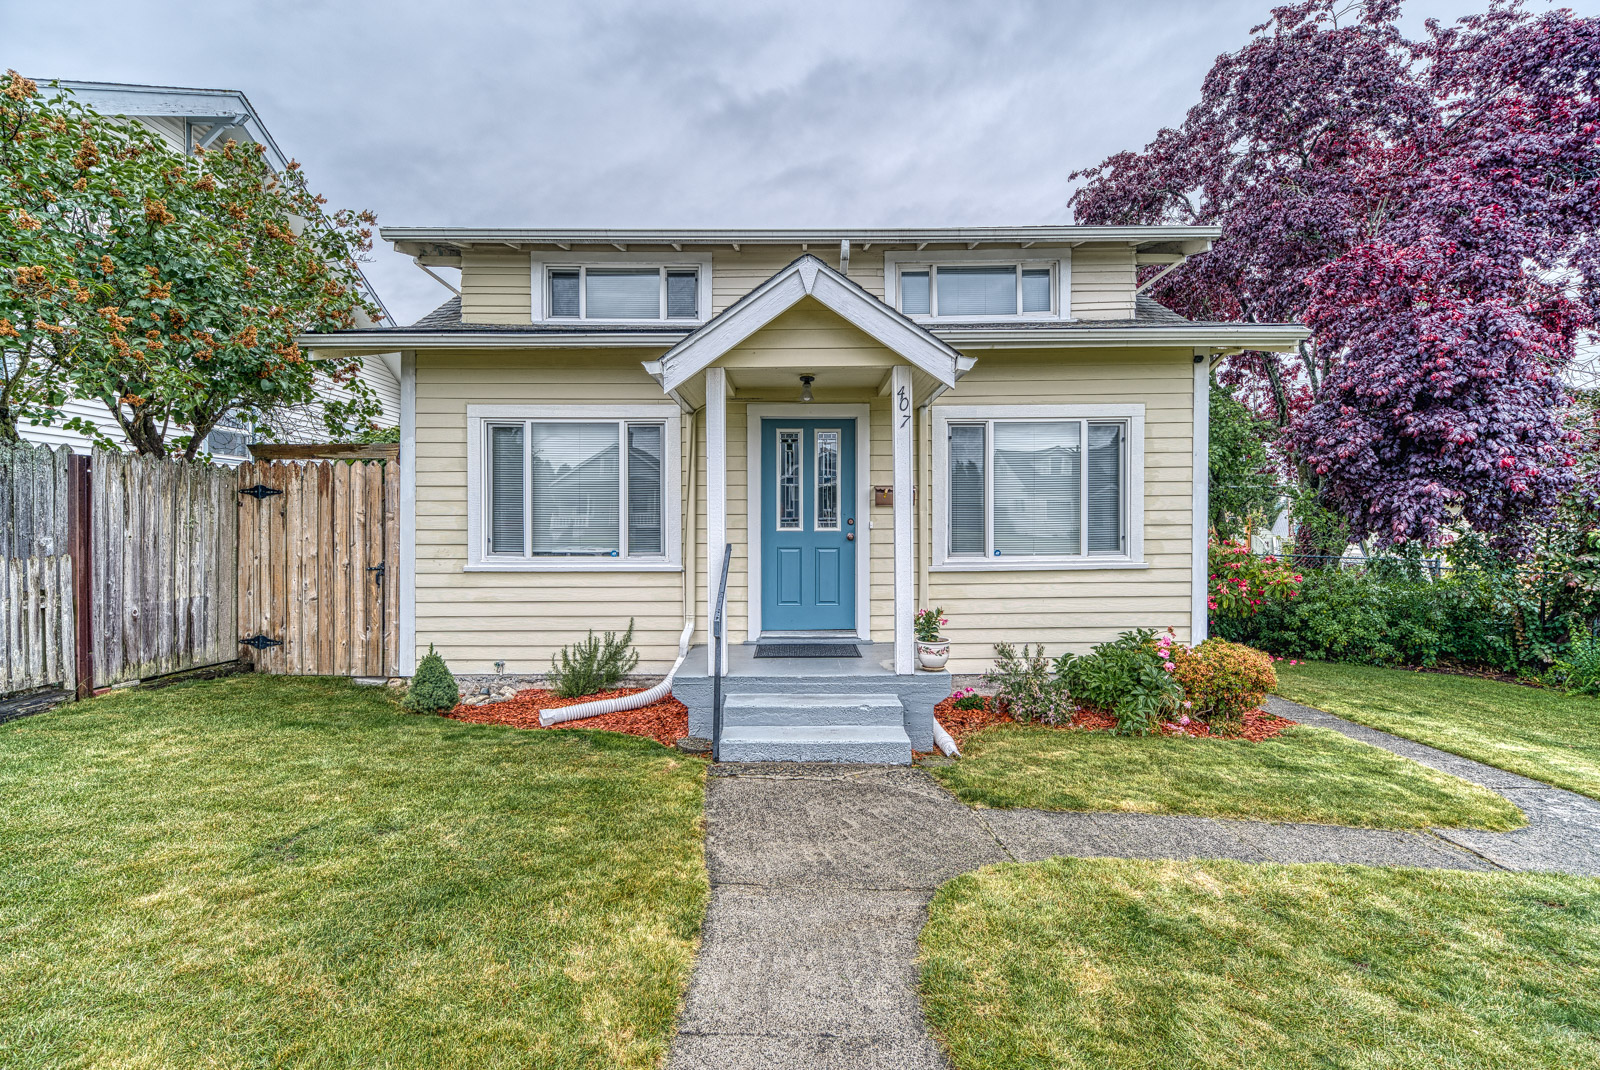 NEW LISTING! 407 S. 60th Street Tacoma, WA 98408